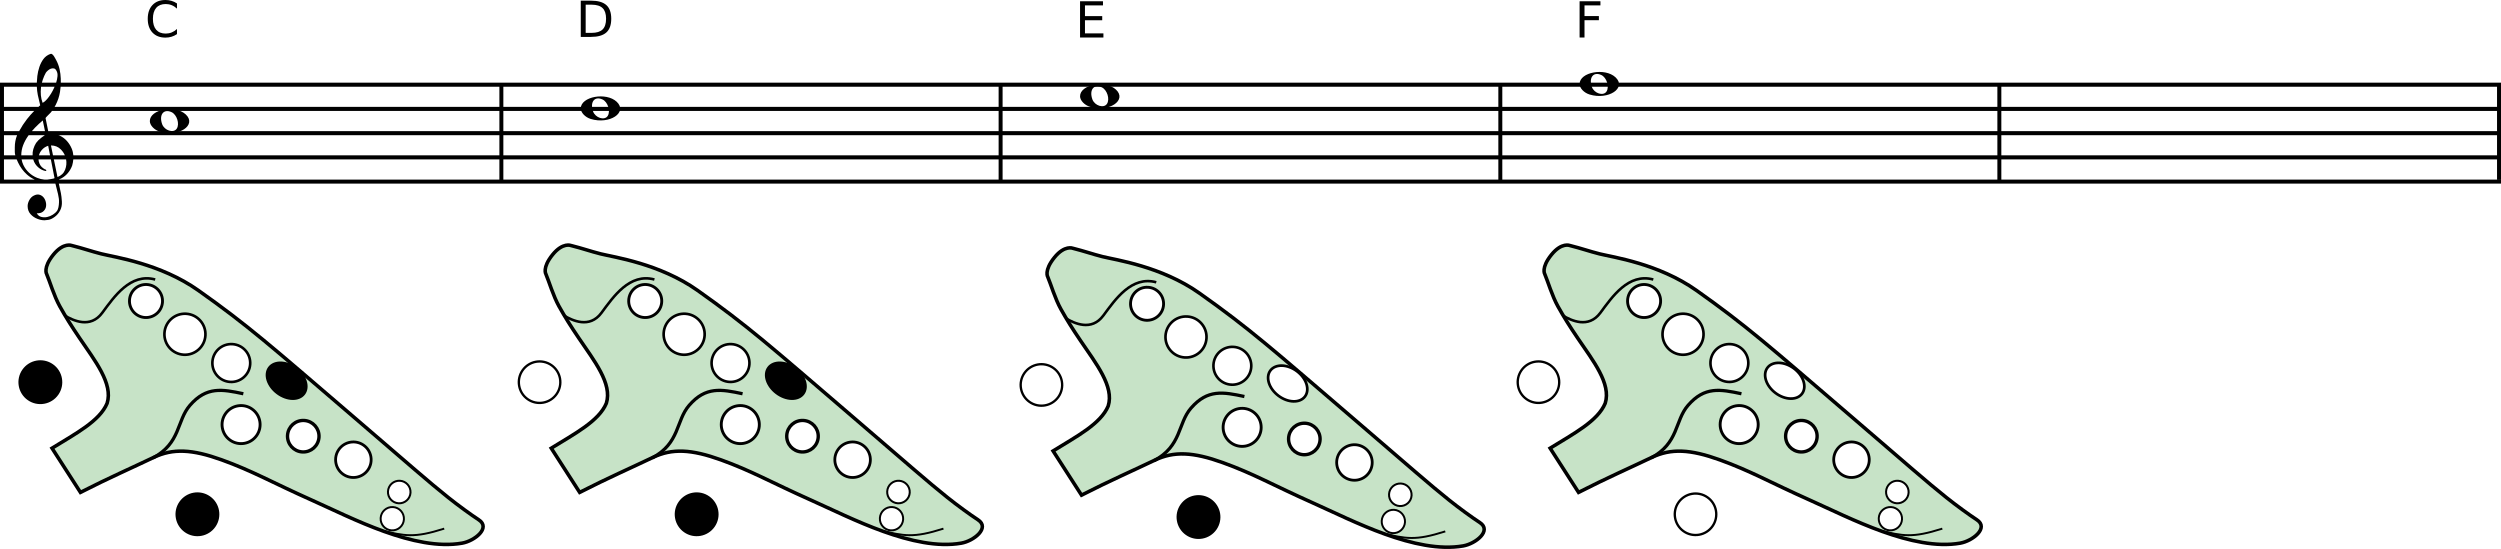 A diagram showing the fingerings of an alto C ocarina high notes with Italian system  C: Lt Rt Lp D: Rt Lp E: Rt F: (all open)